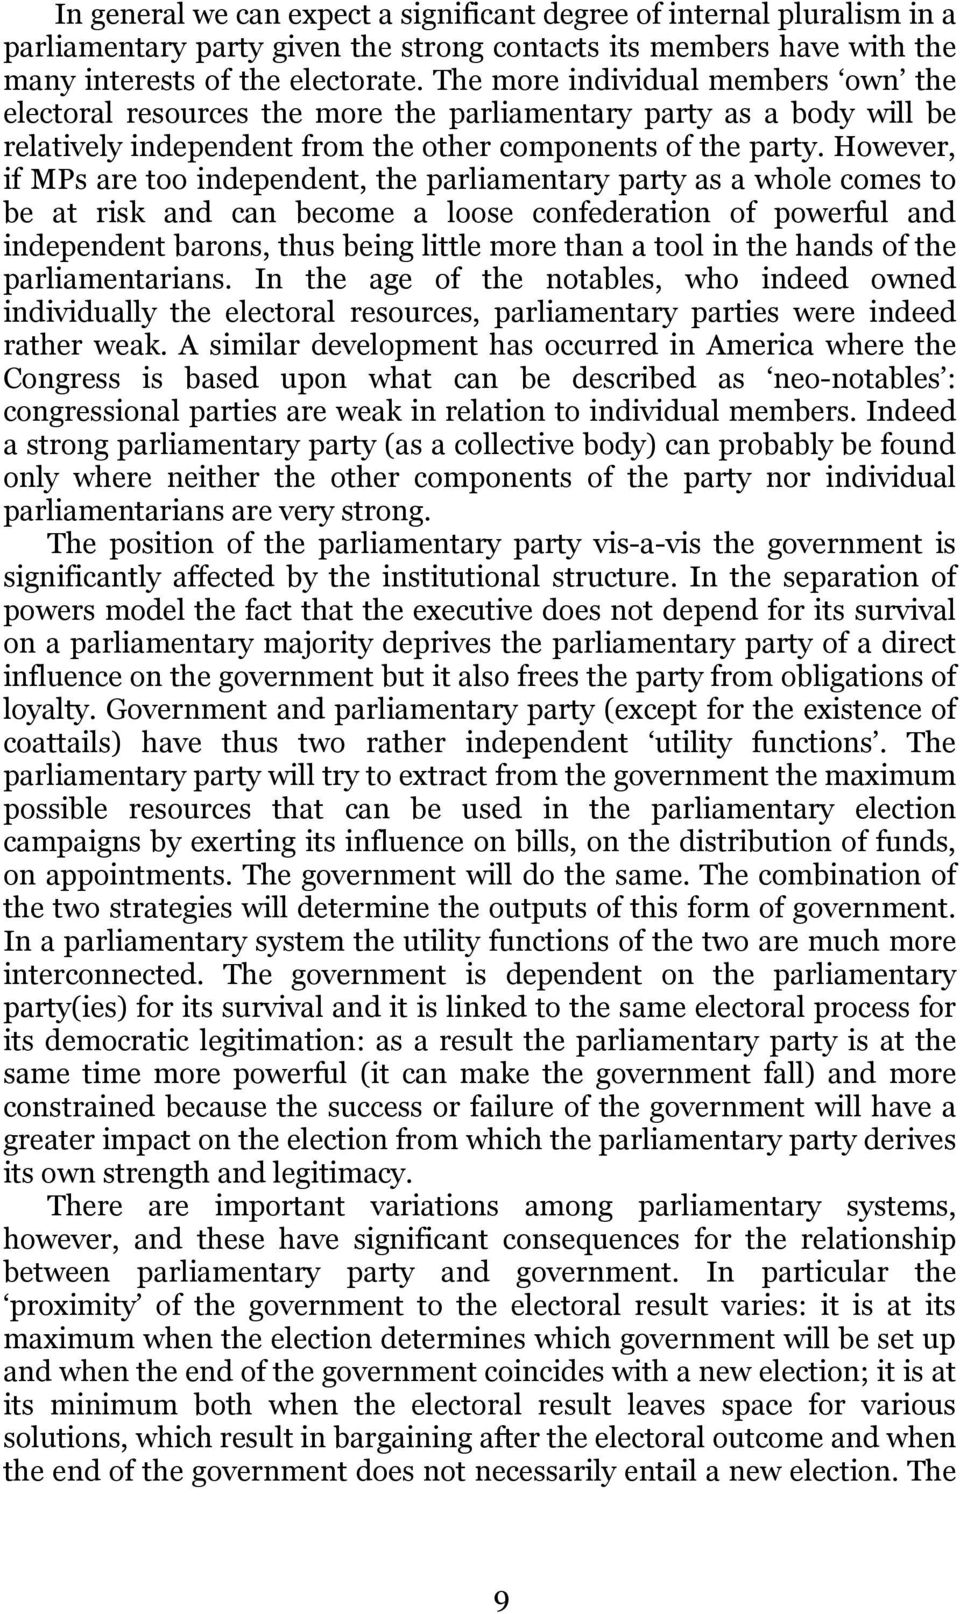 However, if MPs are too independent, the parliamentary party as a whole comes to be at risk and can become a loose confederation of powerful and independent barons, thus being little more than a tool